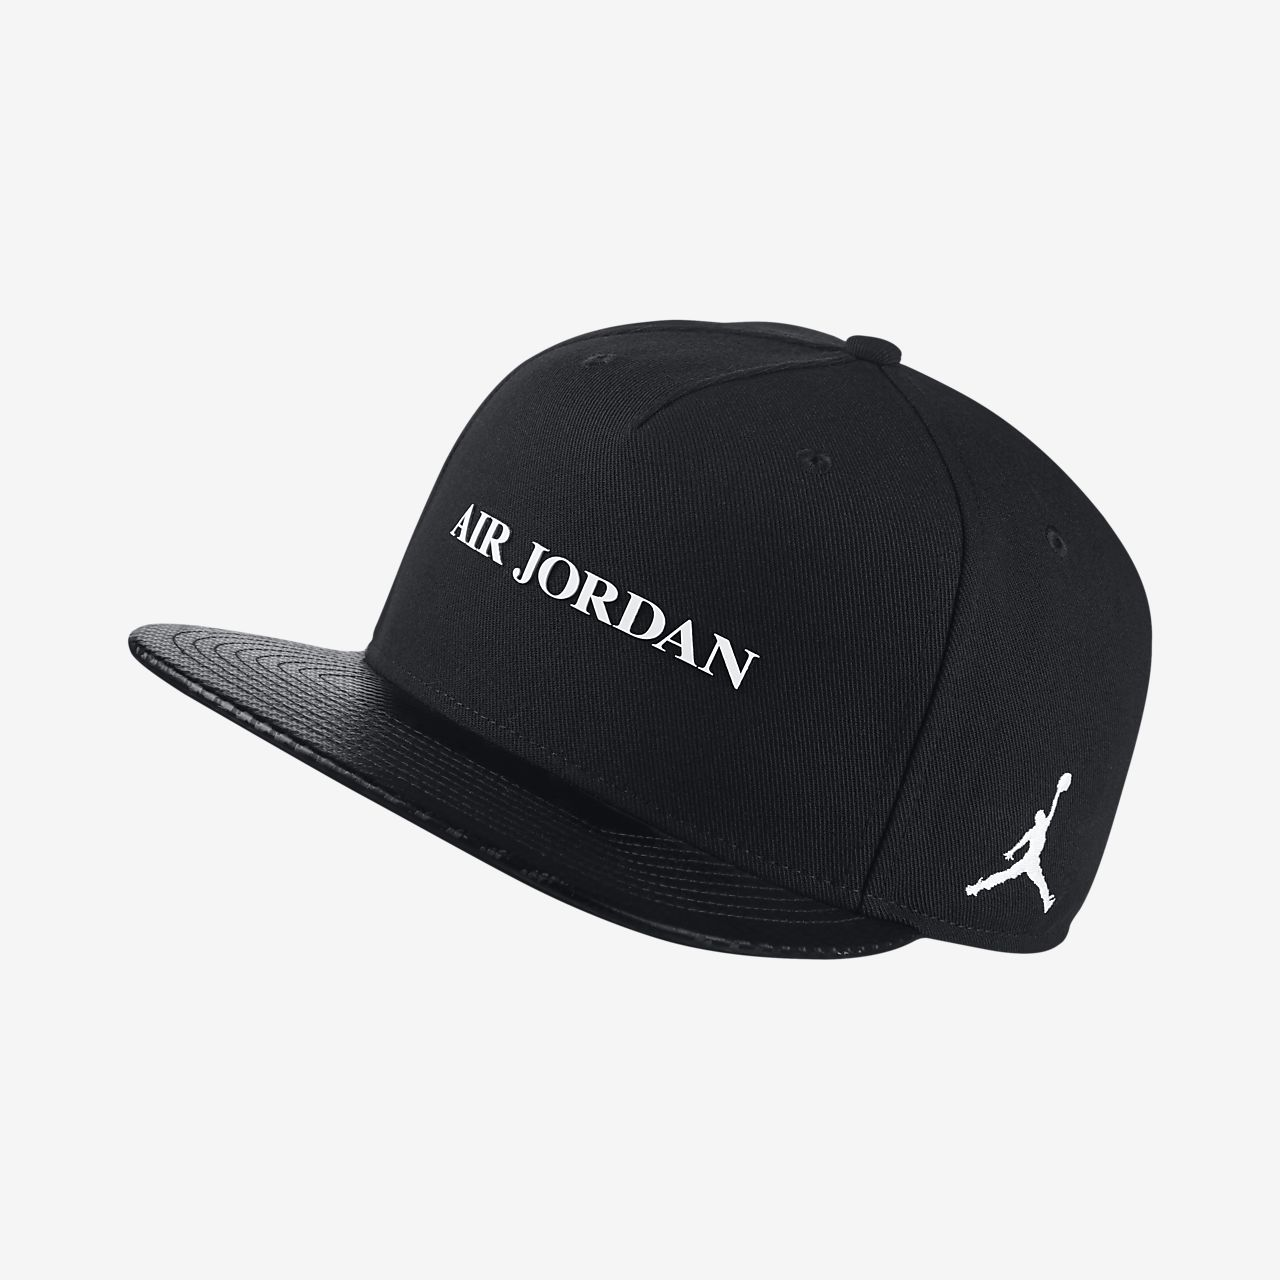 Jordan Jumpman Pro AJ 10 Adjustable Hat